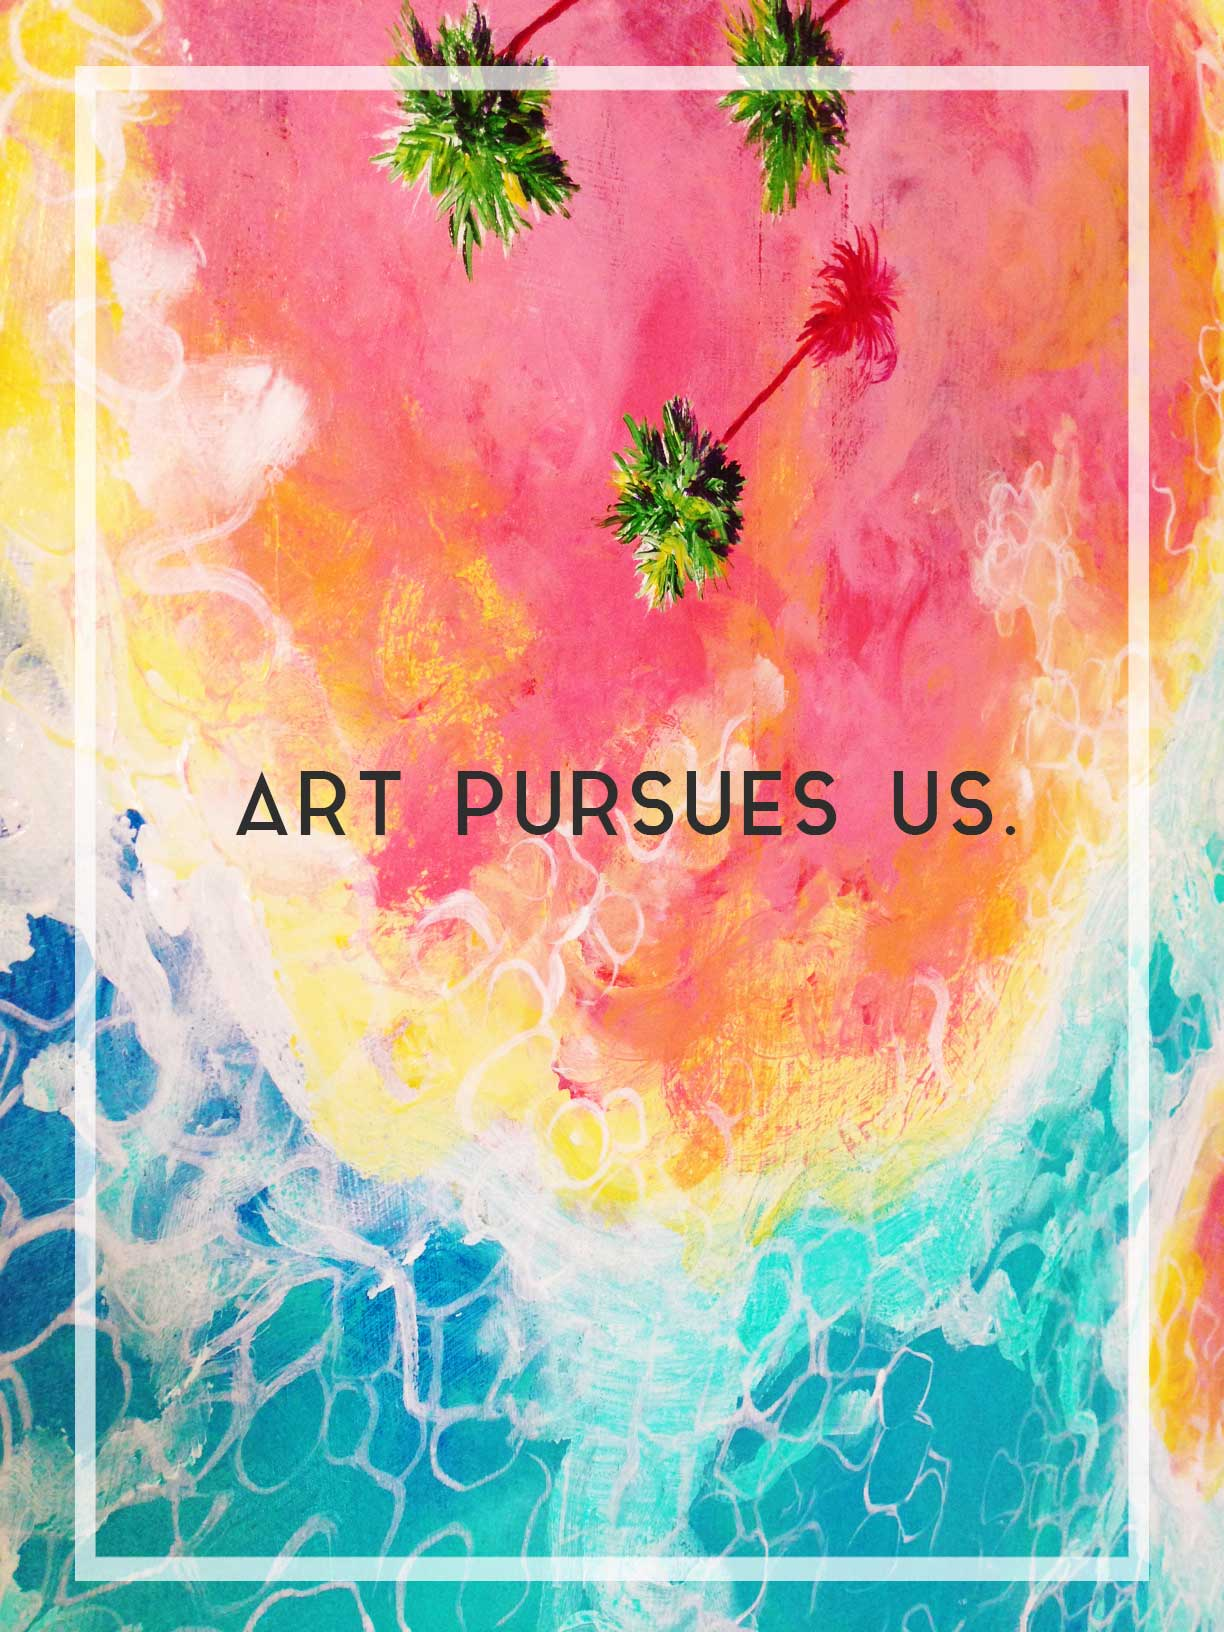 Art-Pursues-Header.jpg